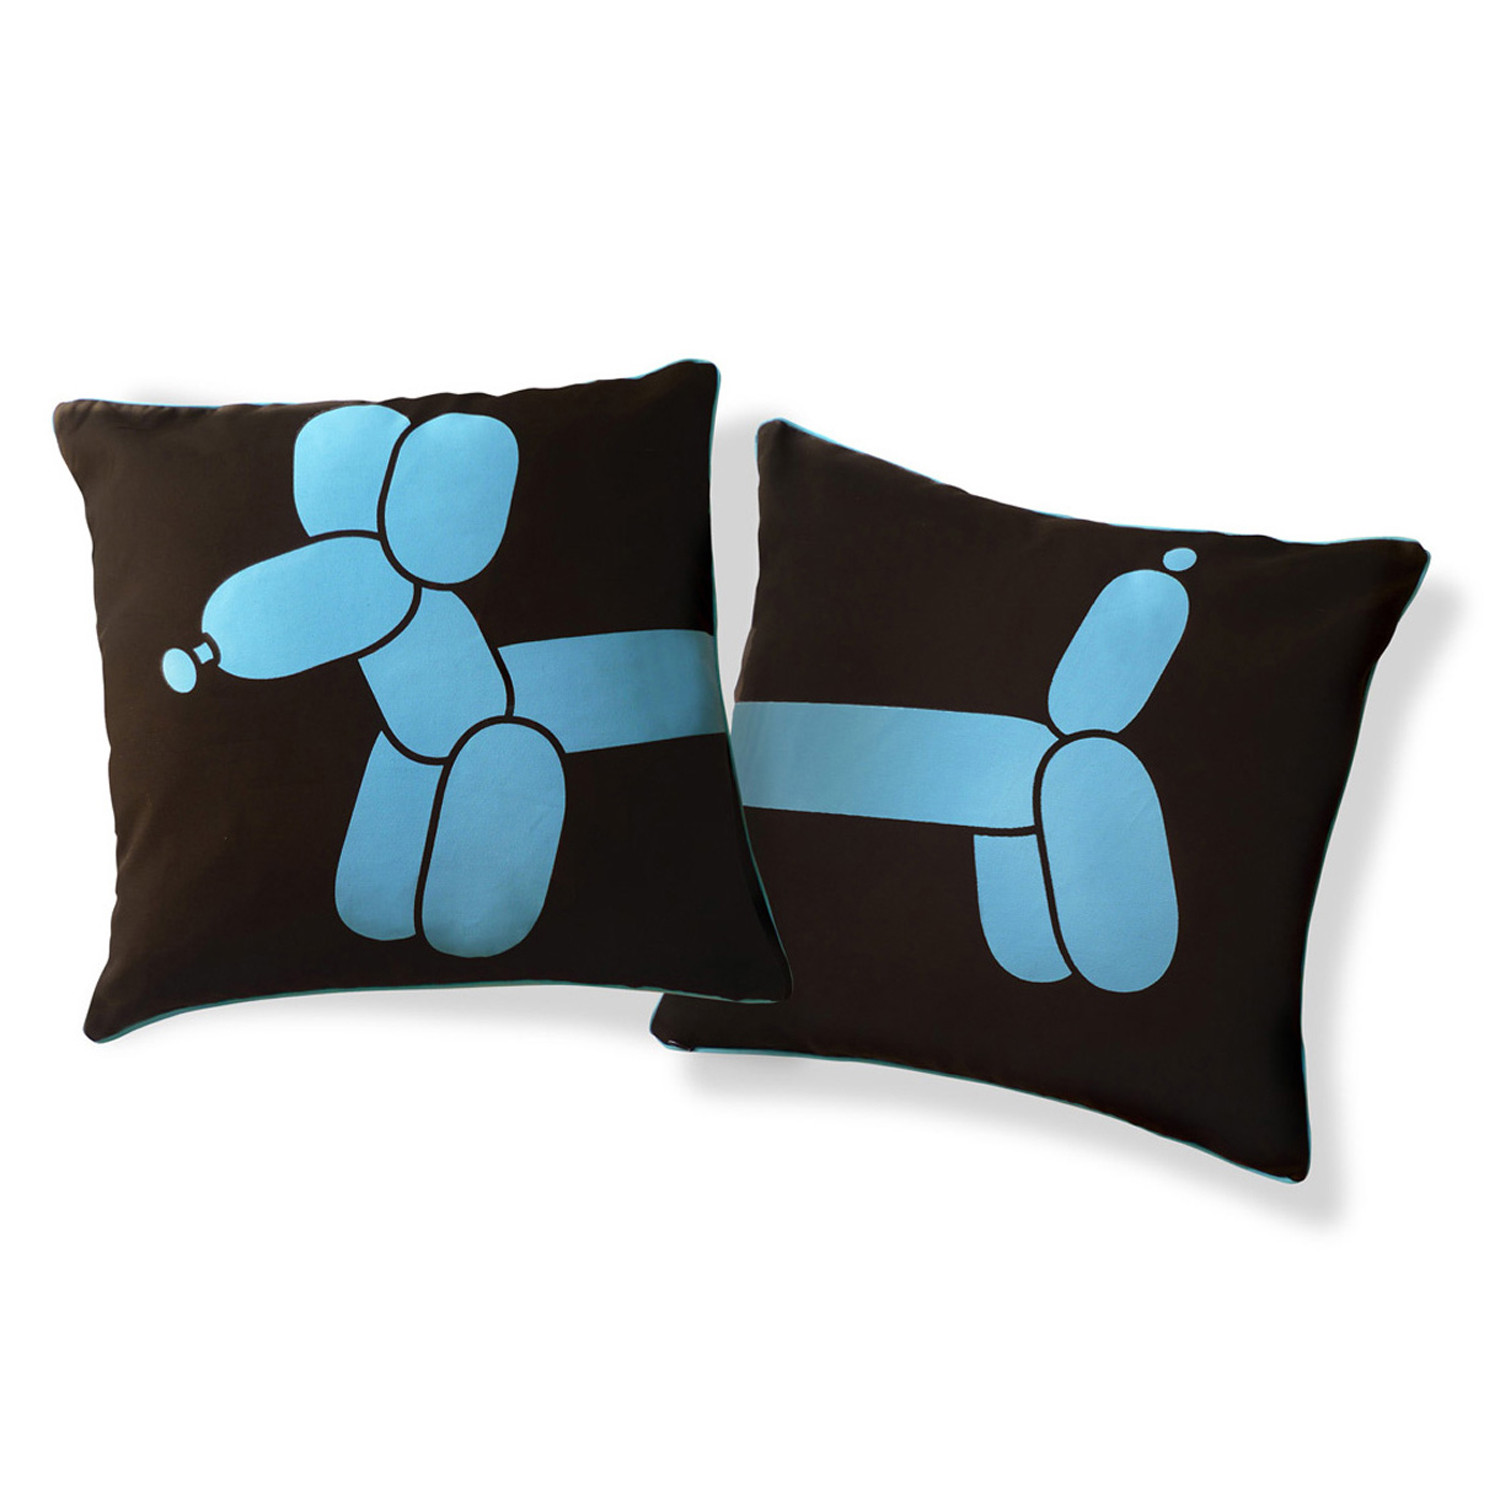 Small Brown Decorative Pillows : Little Balloon Dog Pillow Blue & Brown - Naked Decor - Touch of Modern